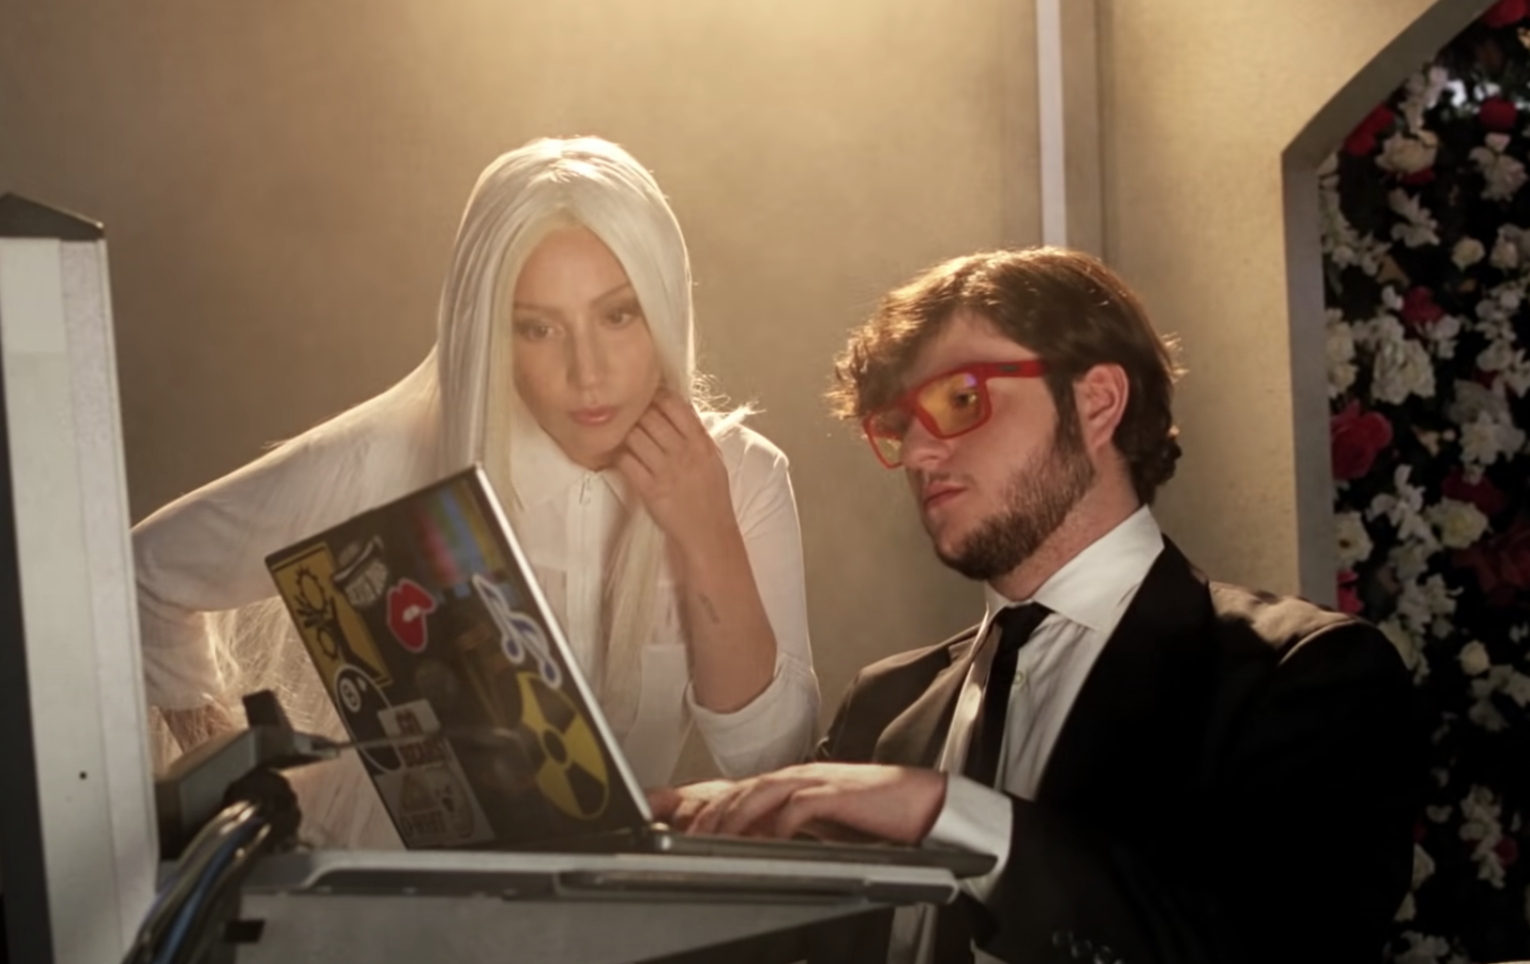 Lady Gaga looking at a computer that Adam Dahlberg is working on